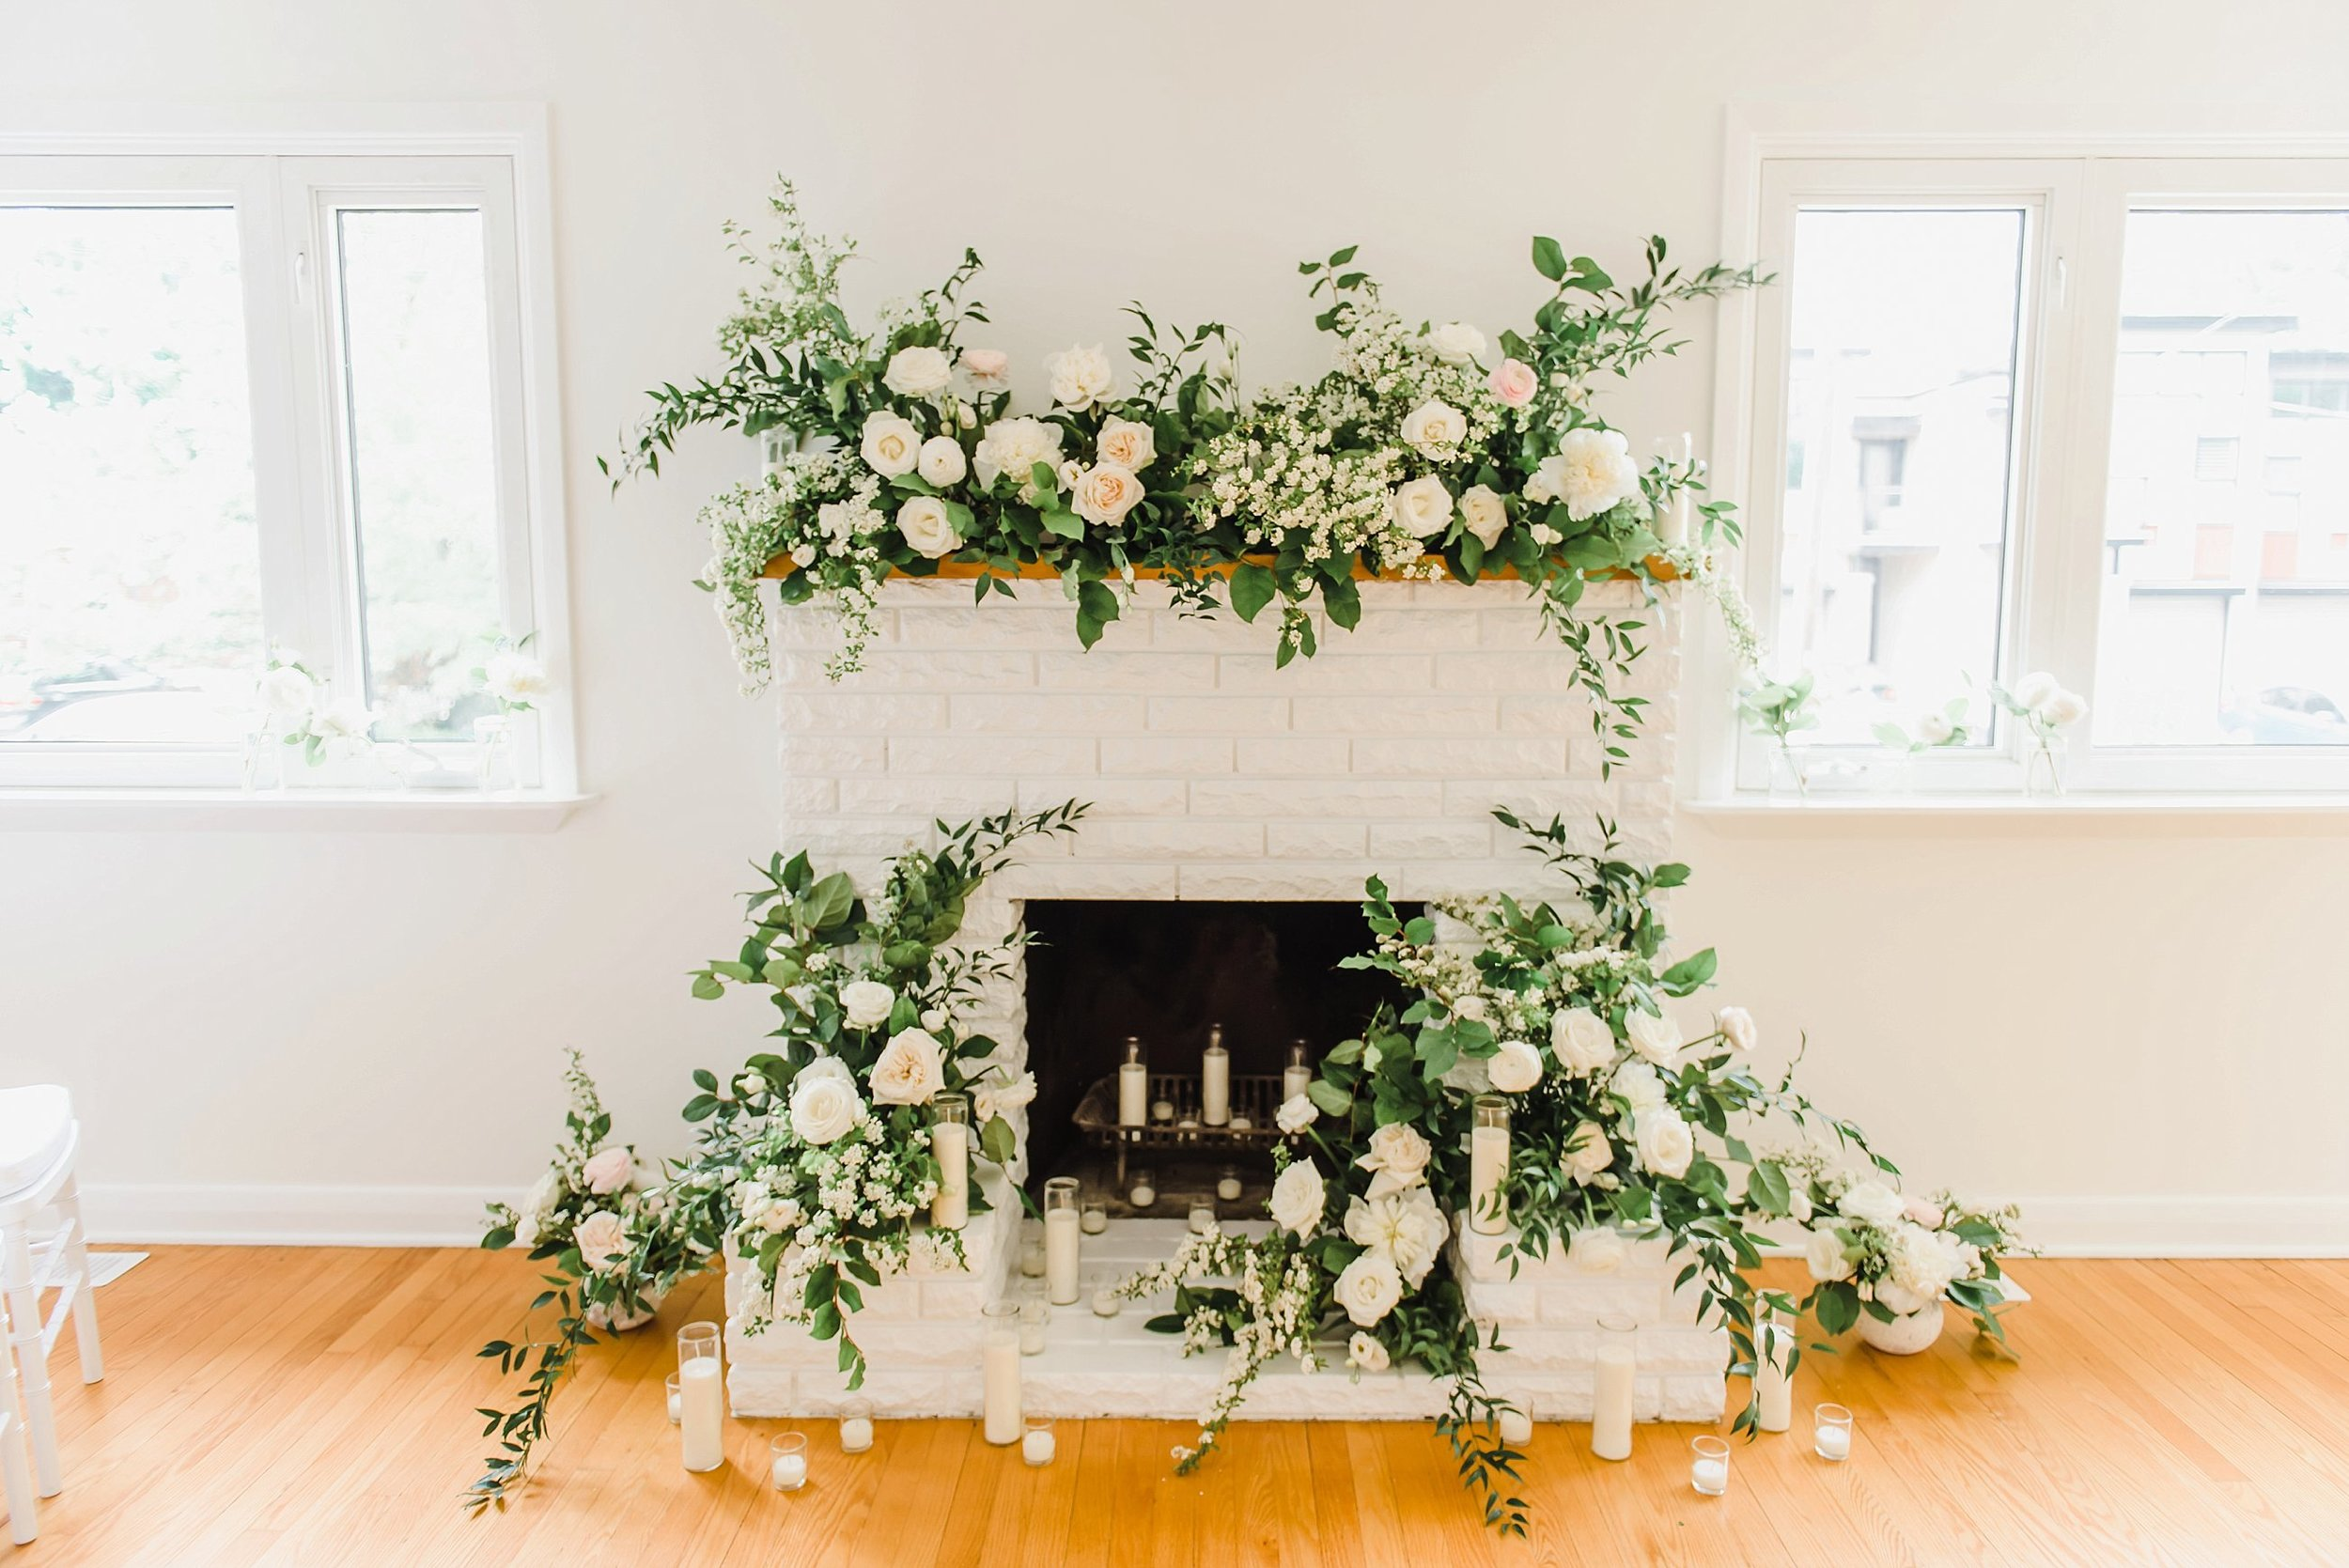 An intimate flower-filled affair at Christine and Liam's Westboro home was beautiful in so many ways.  Planned, designed and executed by Elise of Toast Events, it was a fine art masterpiece with the best vegetarian food I've ever had!  Here's the full feature of their  intimate flower-filled wedding .